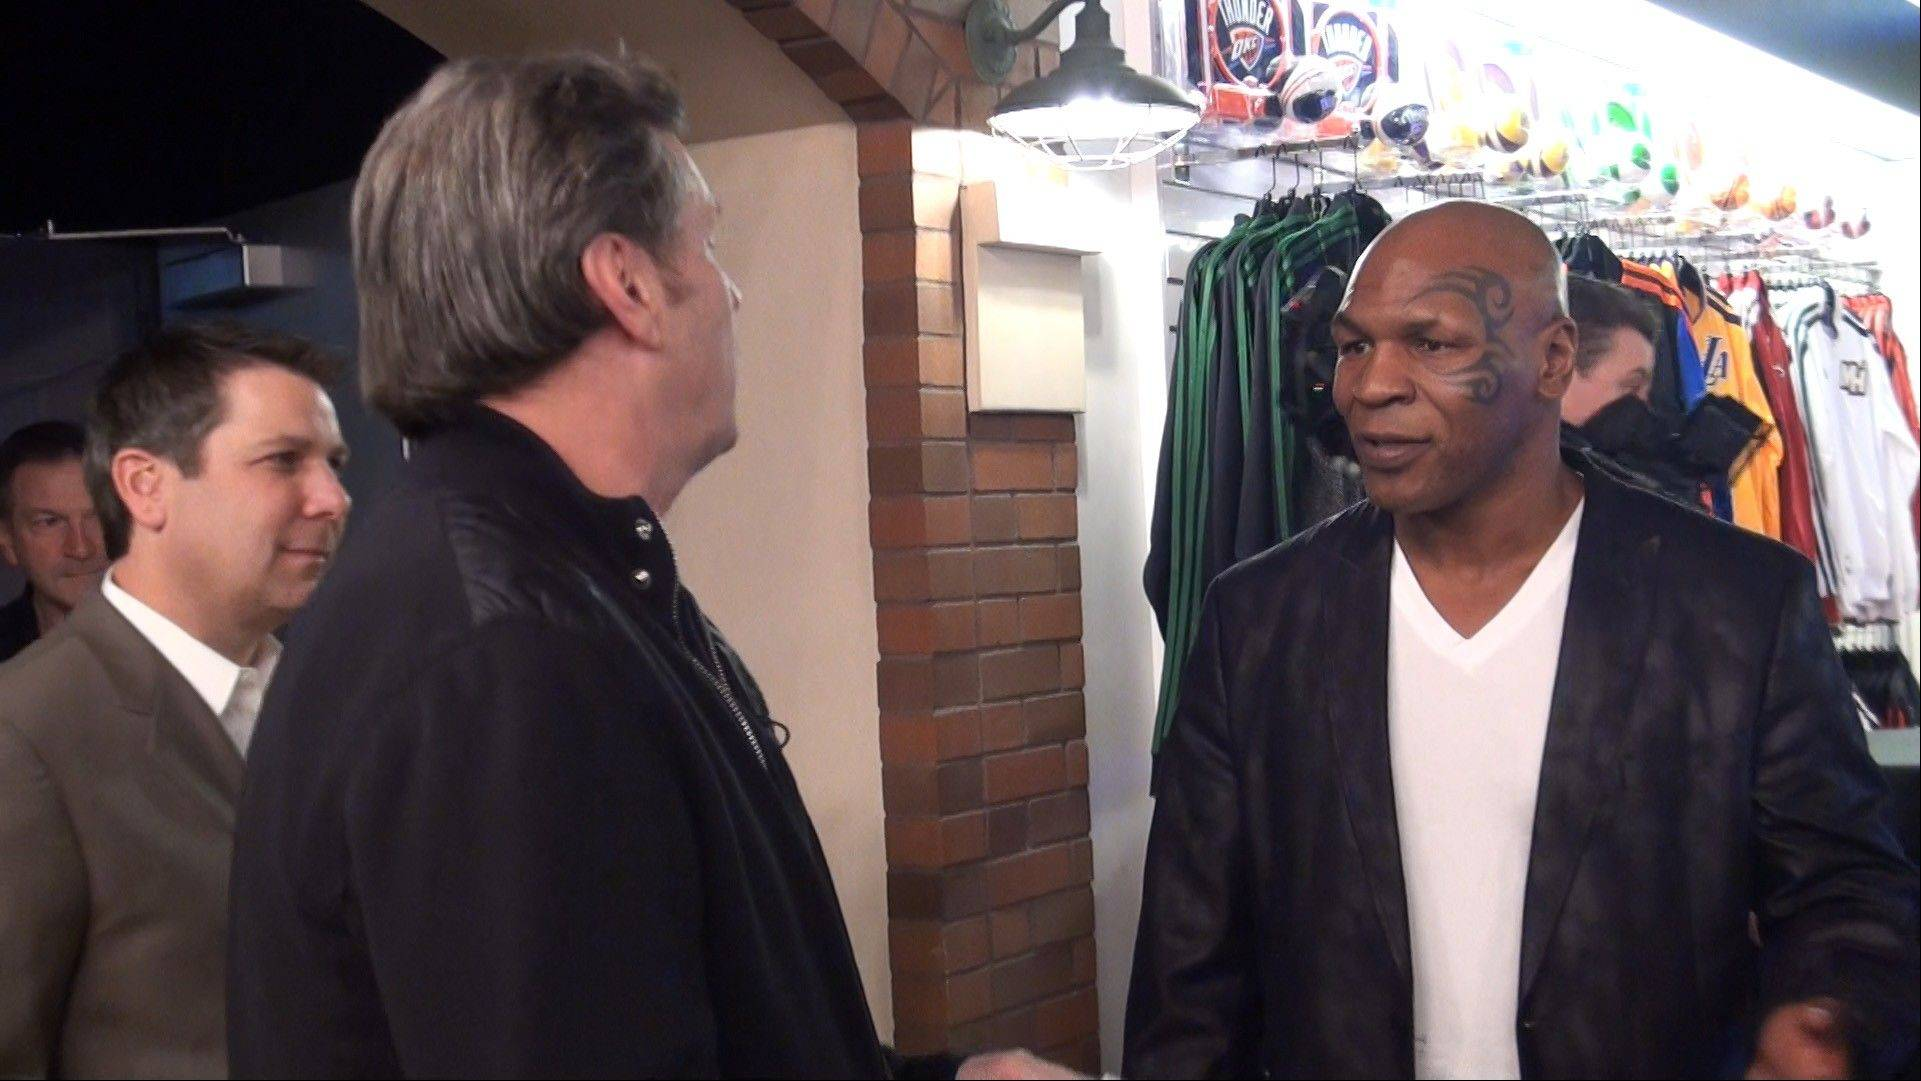 Submitted photoFormer boxing champ Mike Tyson talks with Mike North at the grand opening of the Score Interactive Sports Exhibit and broadcasting studio inside the Luxor hotel in Las Vegas.